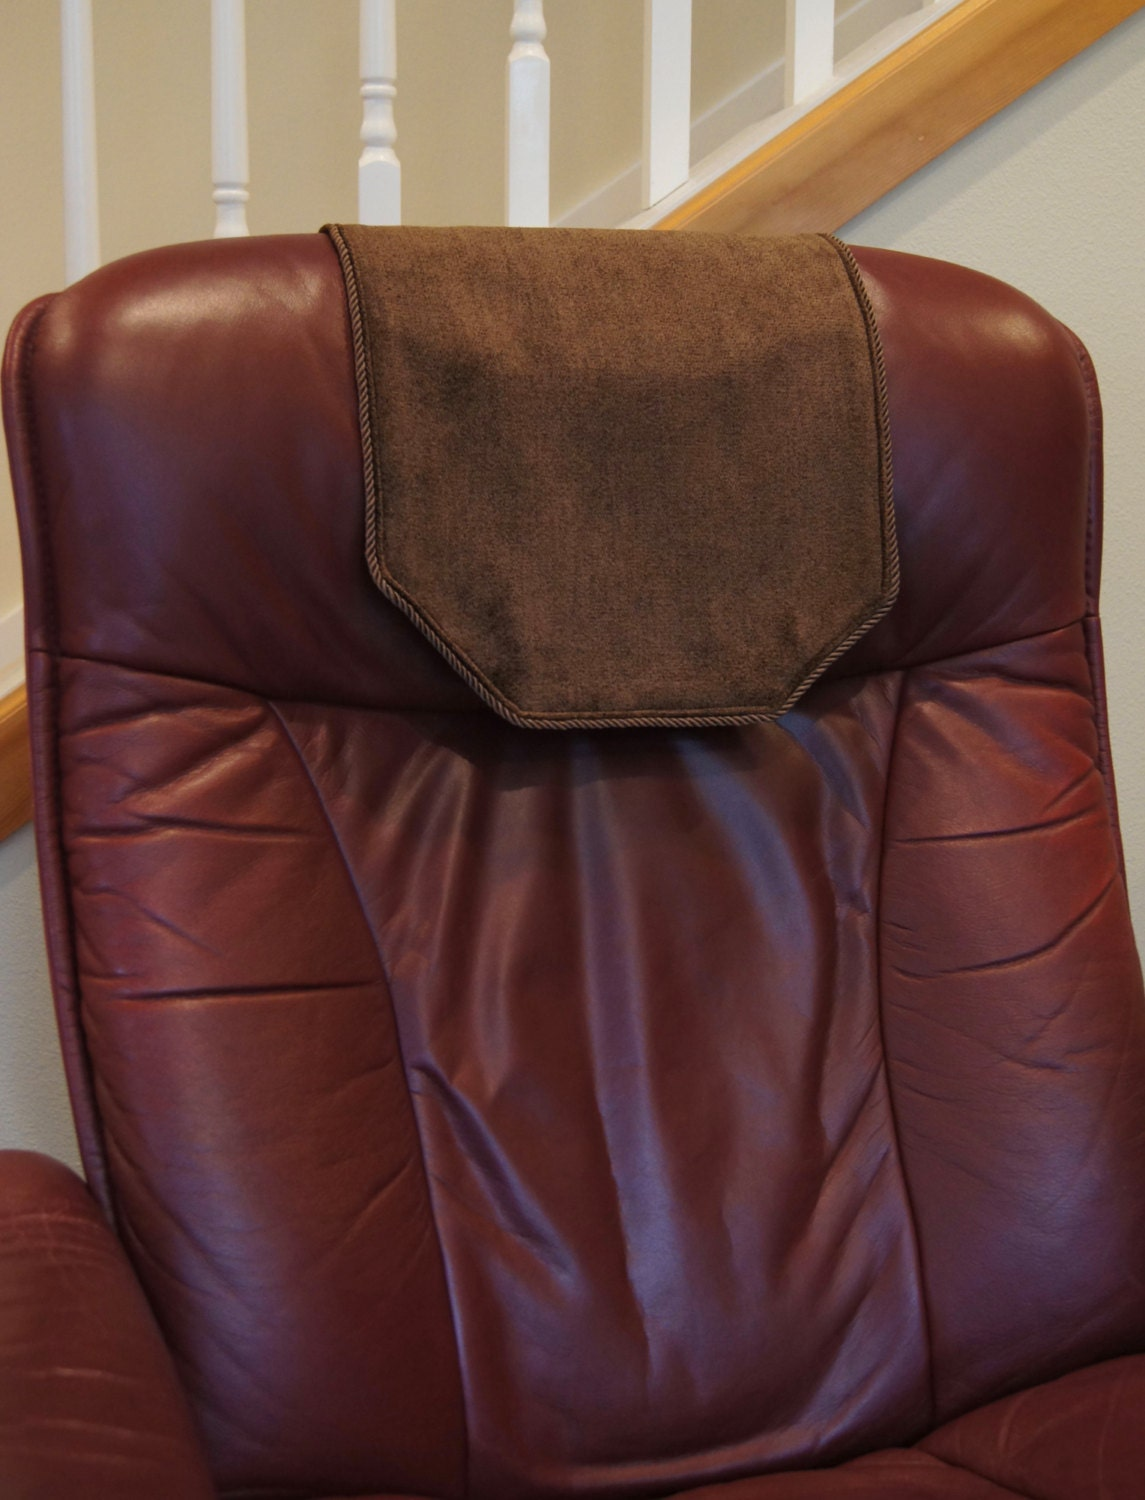 recliner chair headrest cover chocolate brown by chairflair